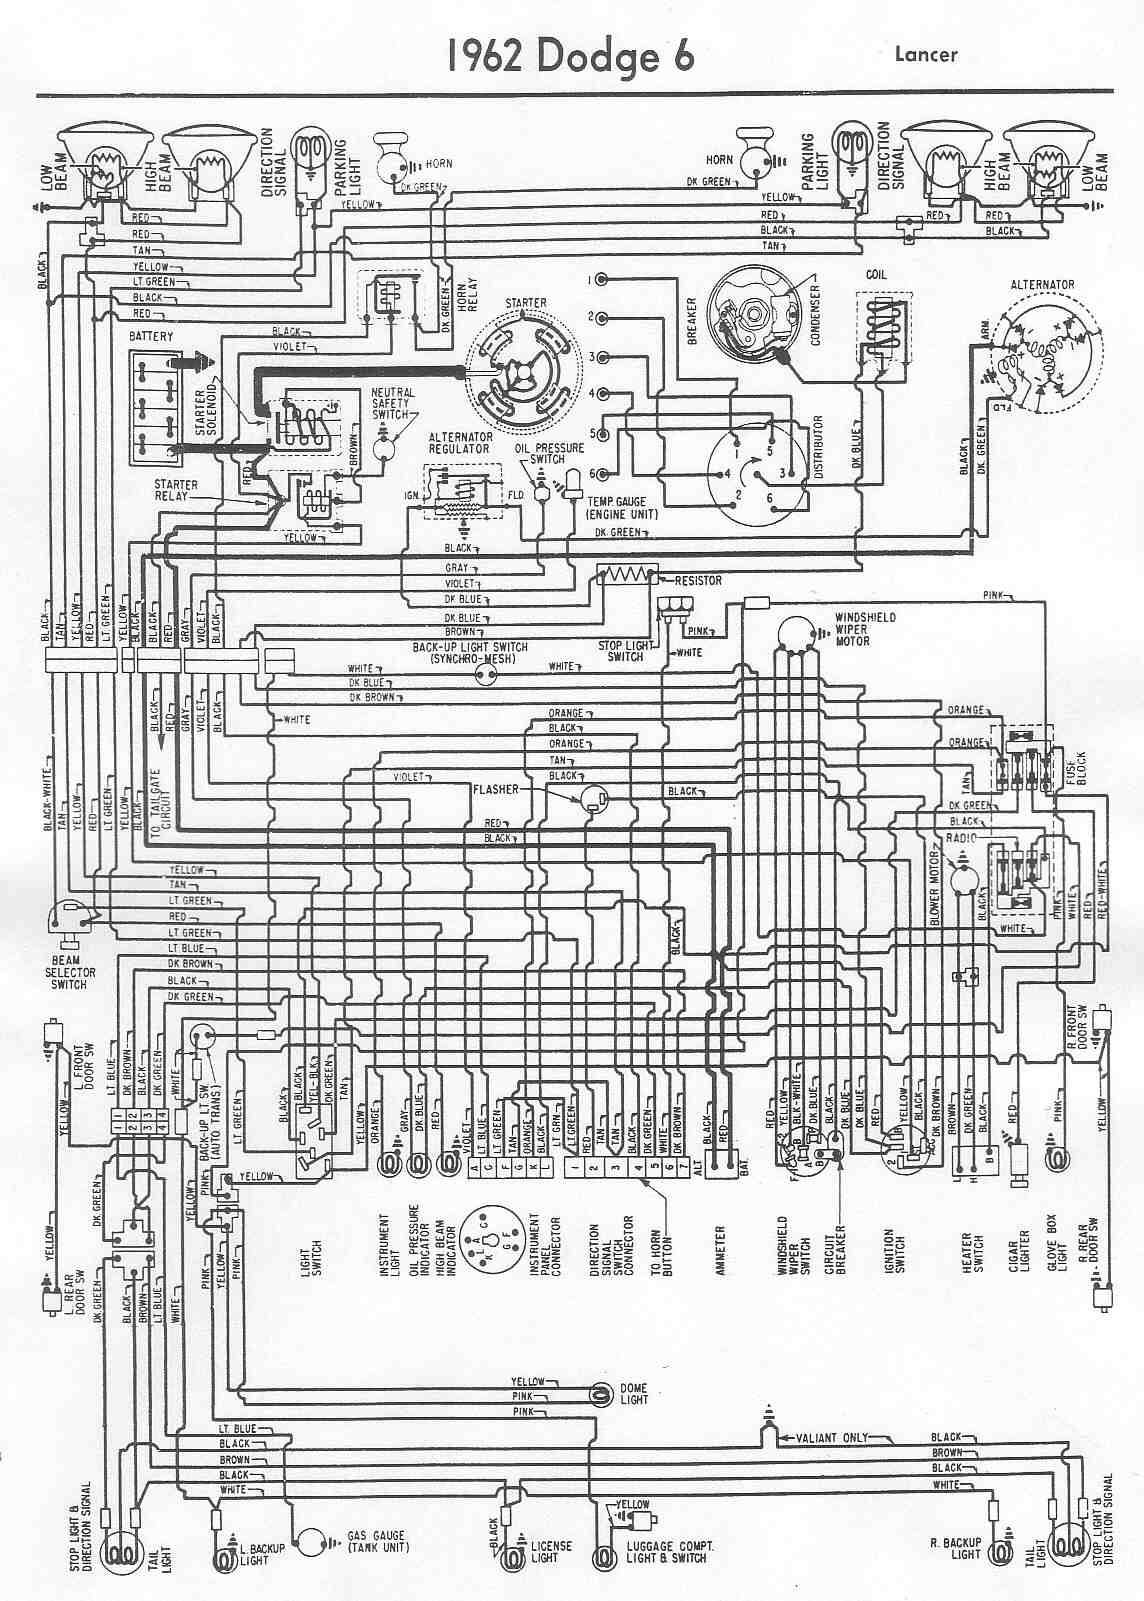 Dodge Electrical Wiring Diagrams - Trusted Wiring Diagram •